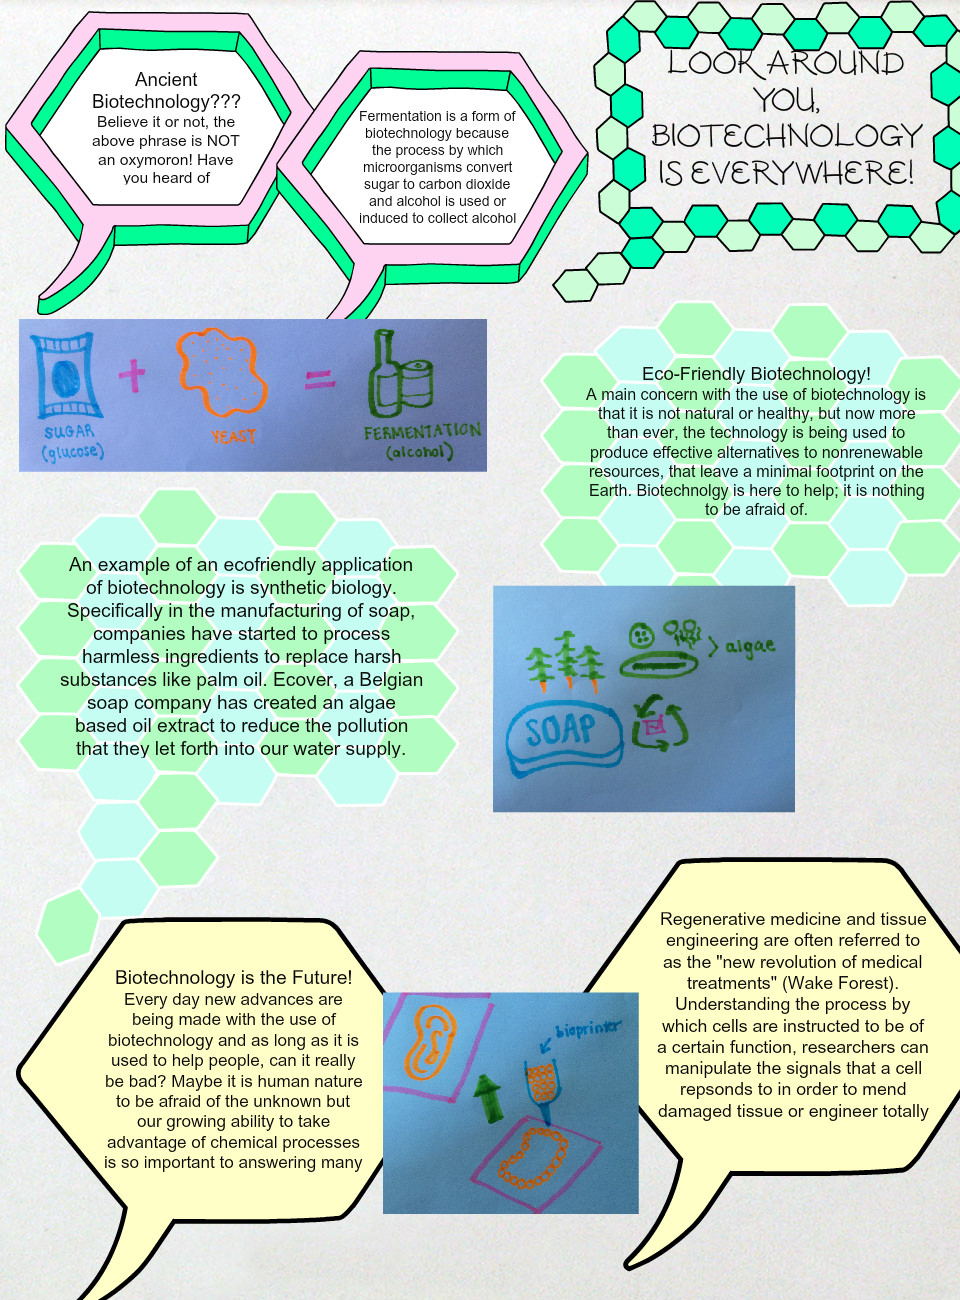 Biotechnology: text, images, music, video | Glogster EDU